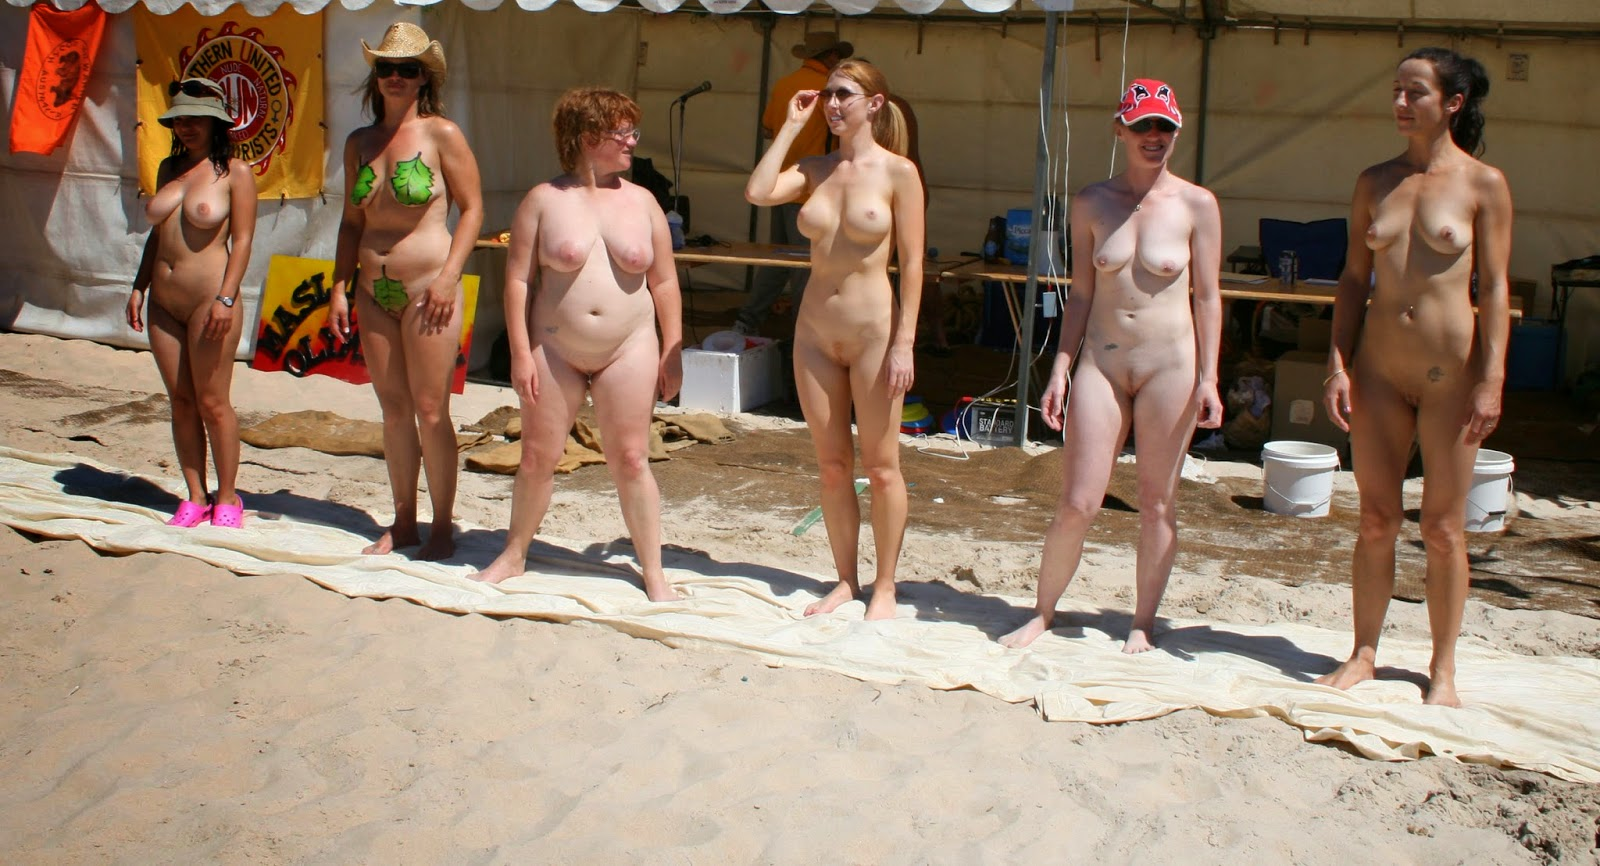 Local resident concerned over lack of signage for esperance nude beach